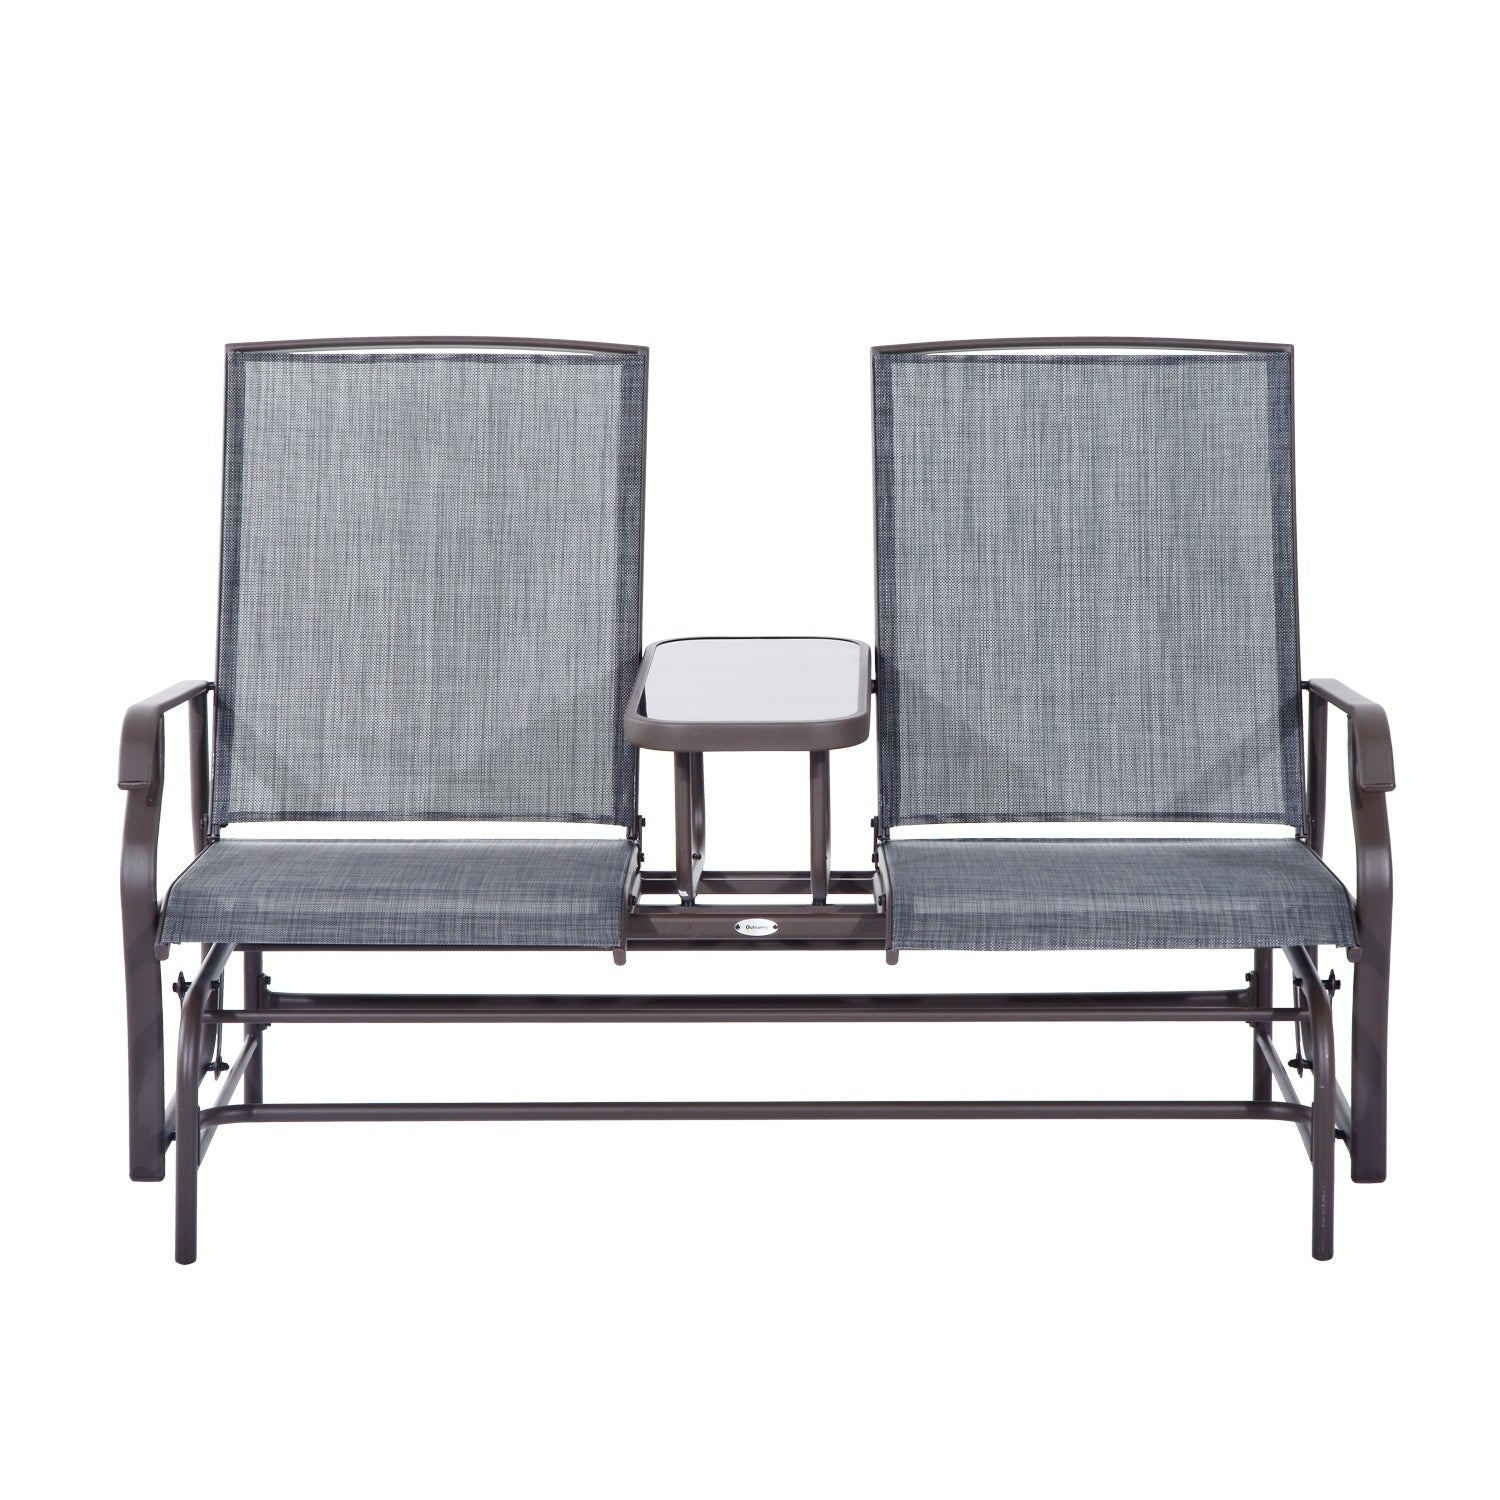 Outsunny Two Person Outdoor Mesh Fabric Patio Double Glider Chair With Center Table Free Shipping Today 18013207